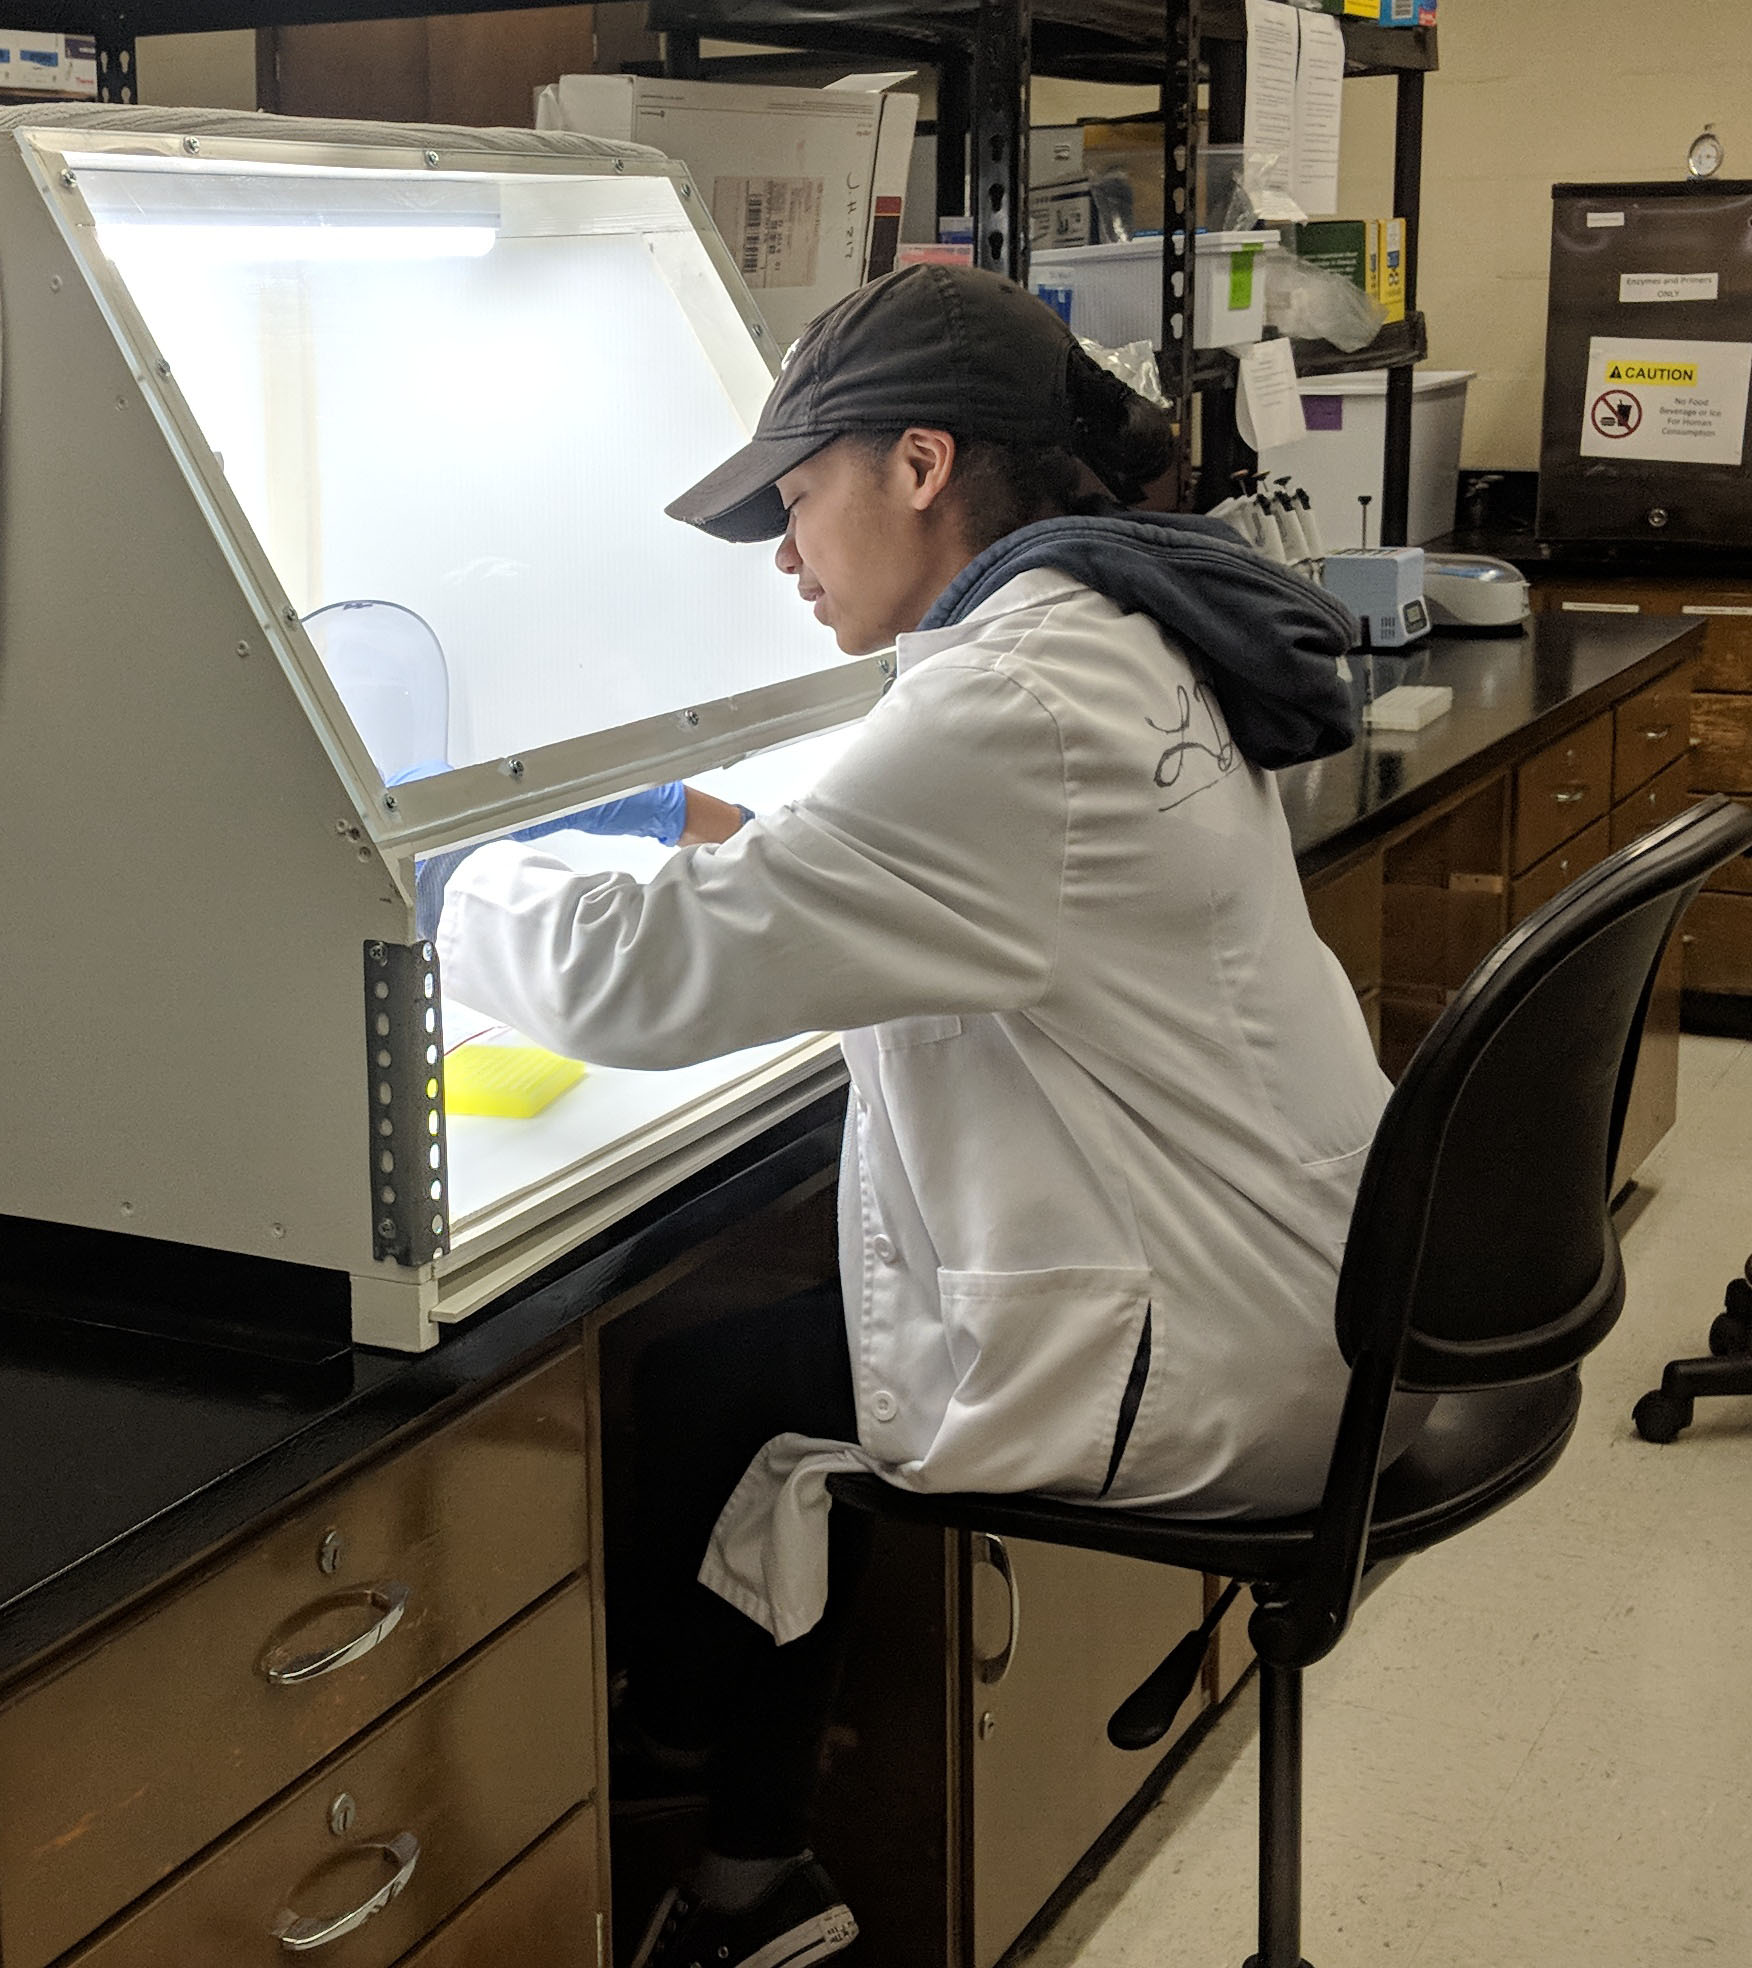 Liyah Smith prepares a Polymerase Chain Reaction (PCR) microplate for analysis. The PCR technique amplifies DNA from a sample to facilitate detailed study of the DNA.